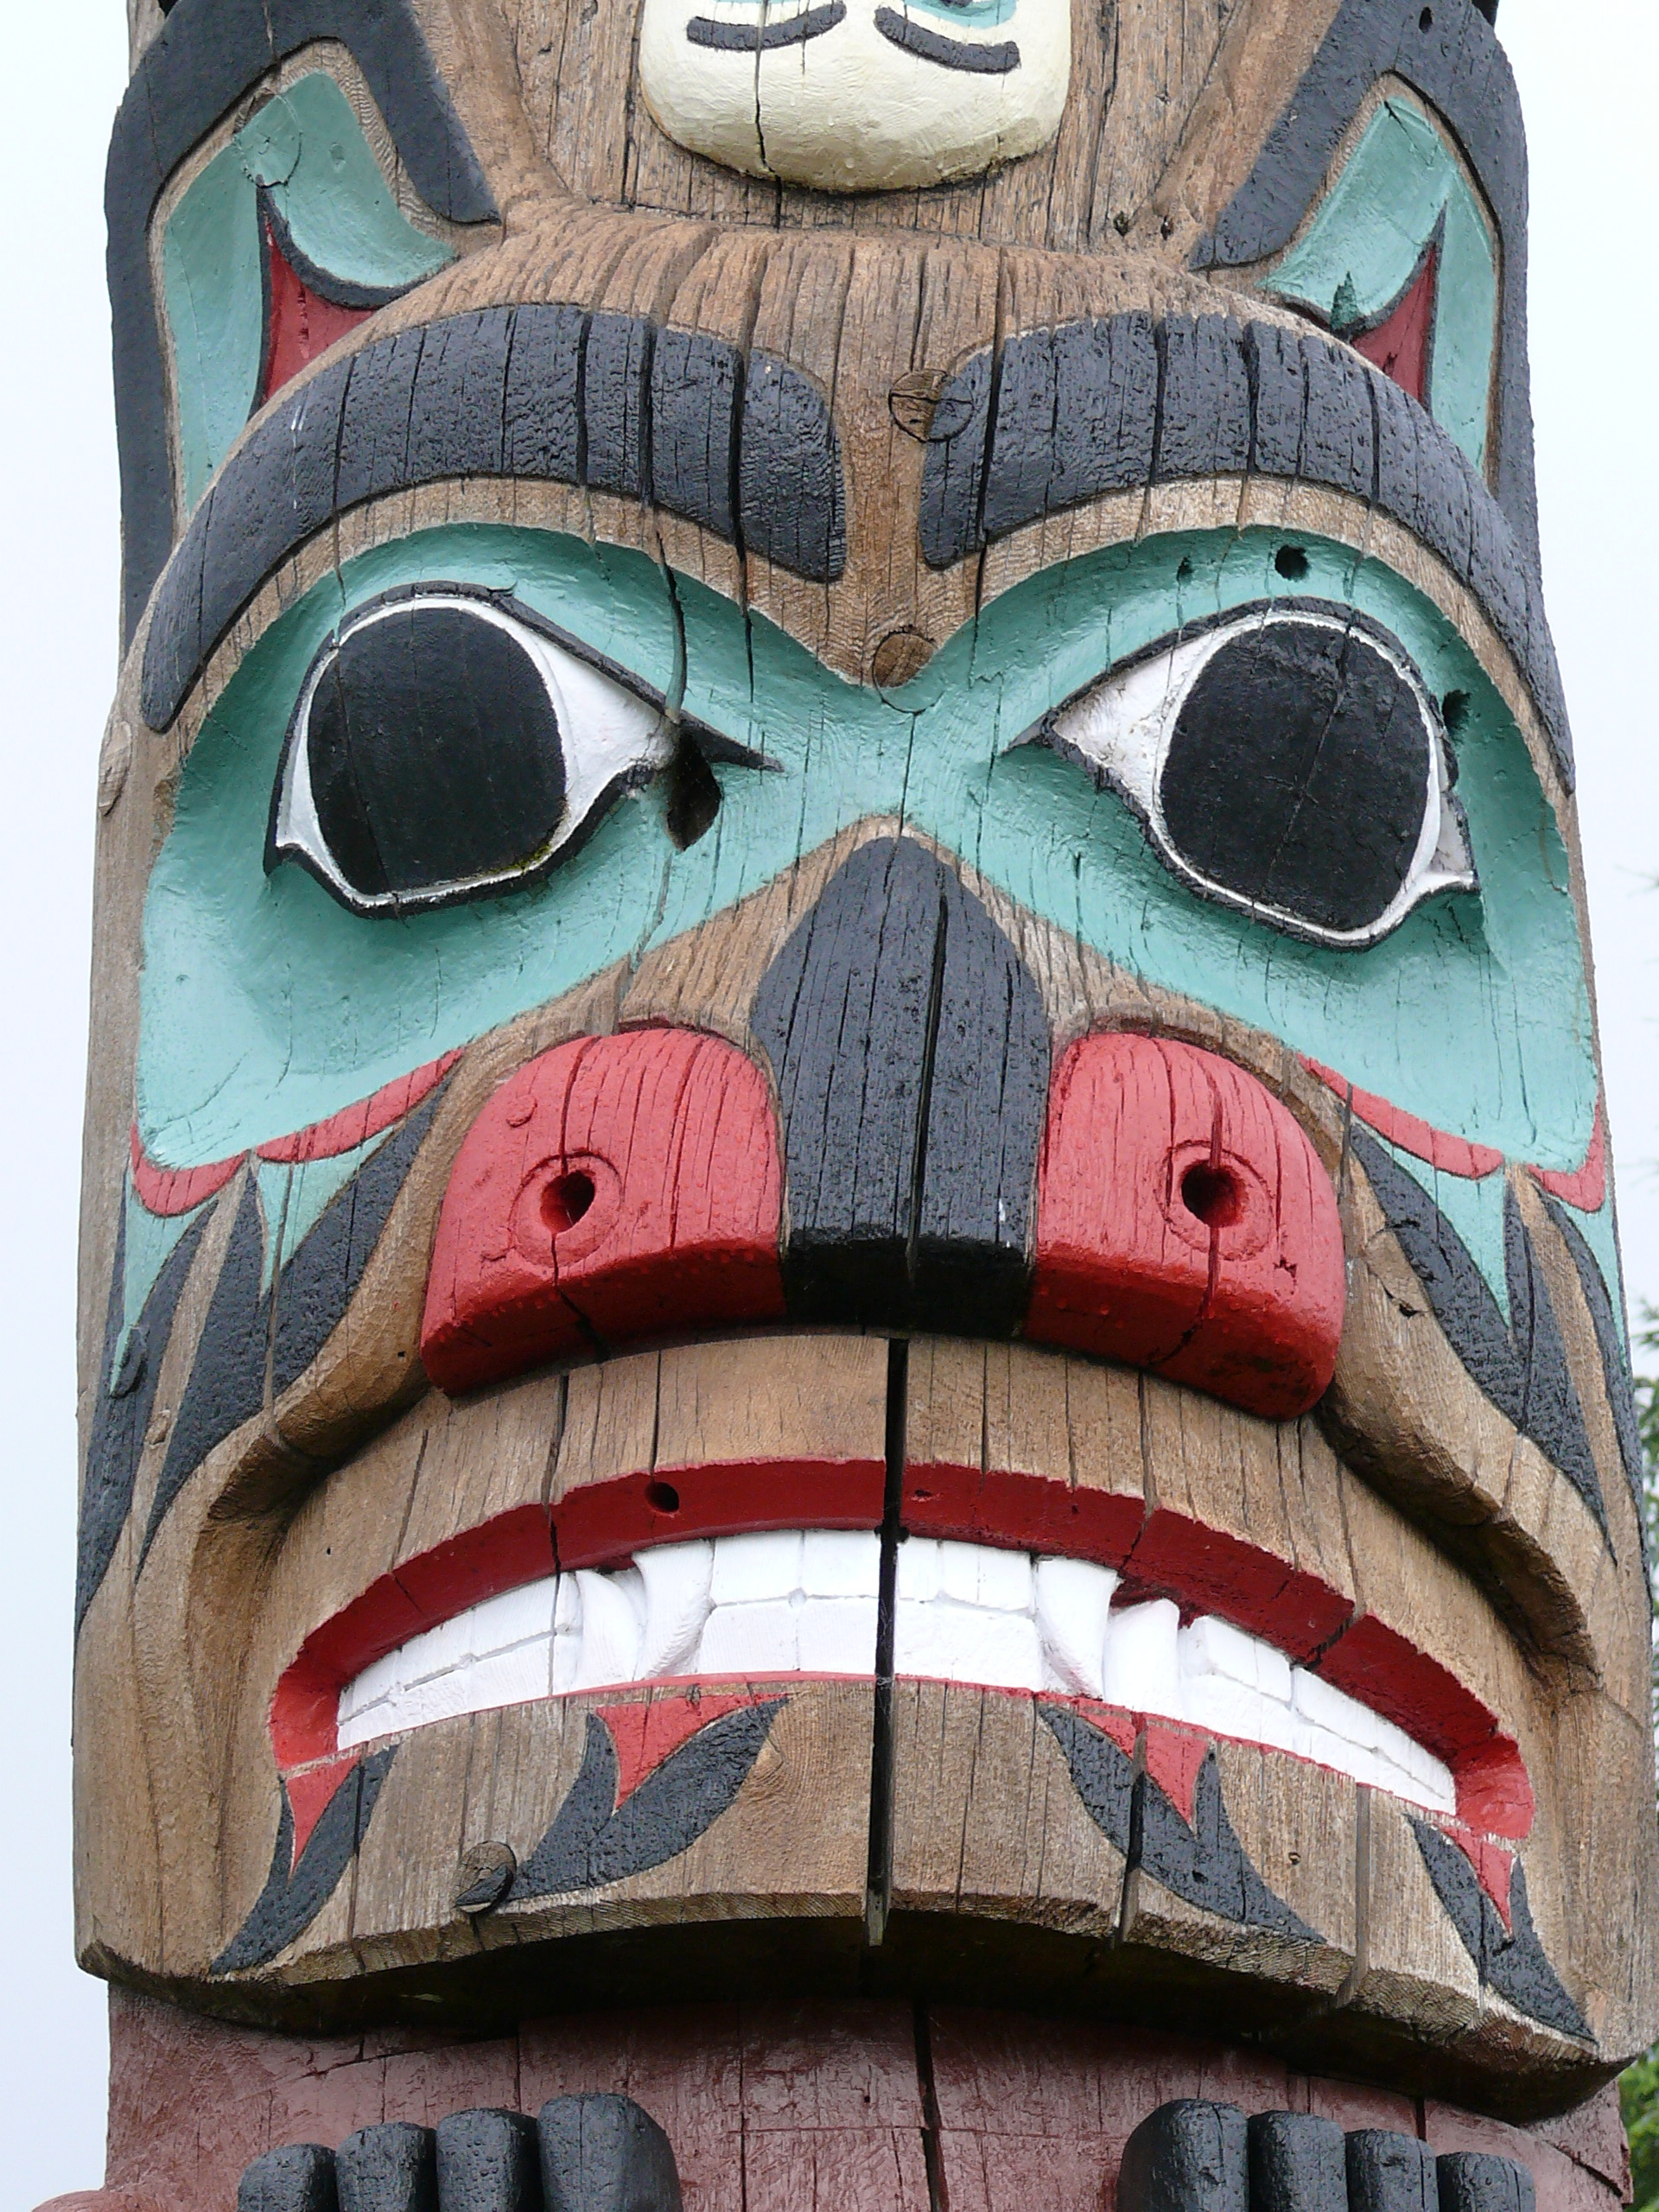 beartotem.jpg - Bear face on a totem pole